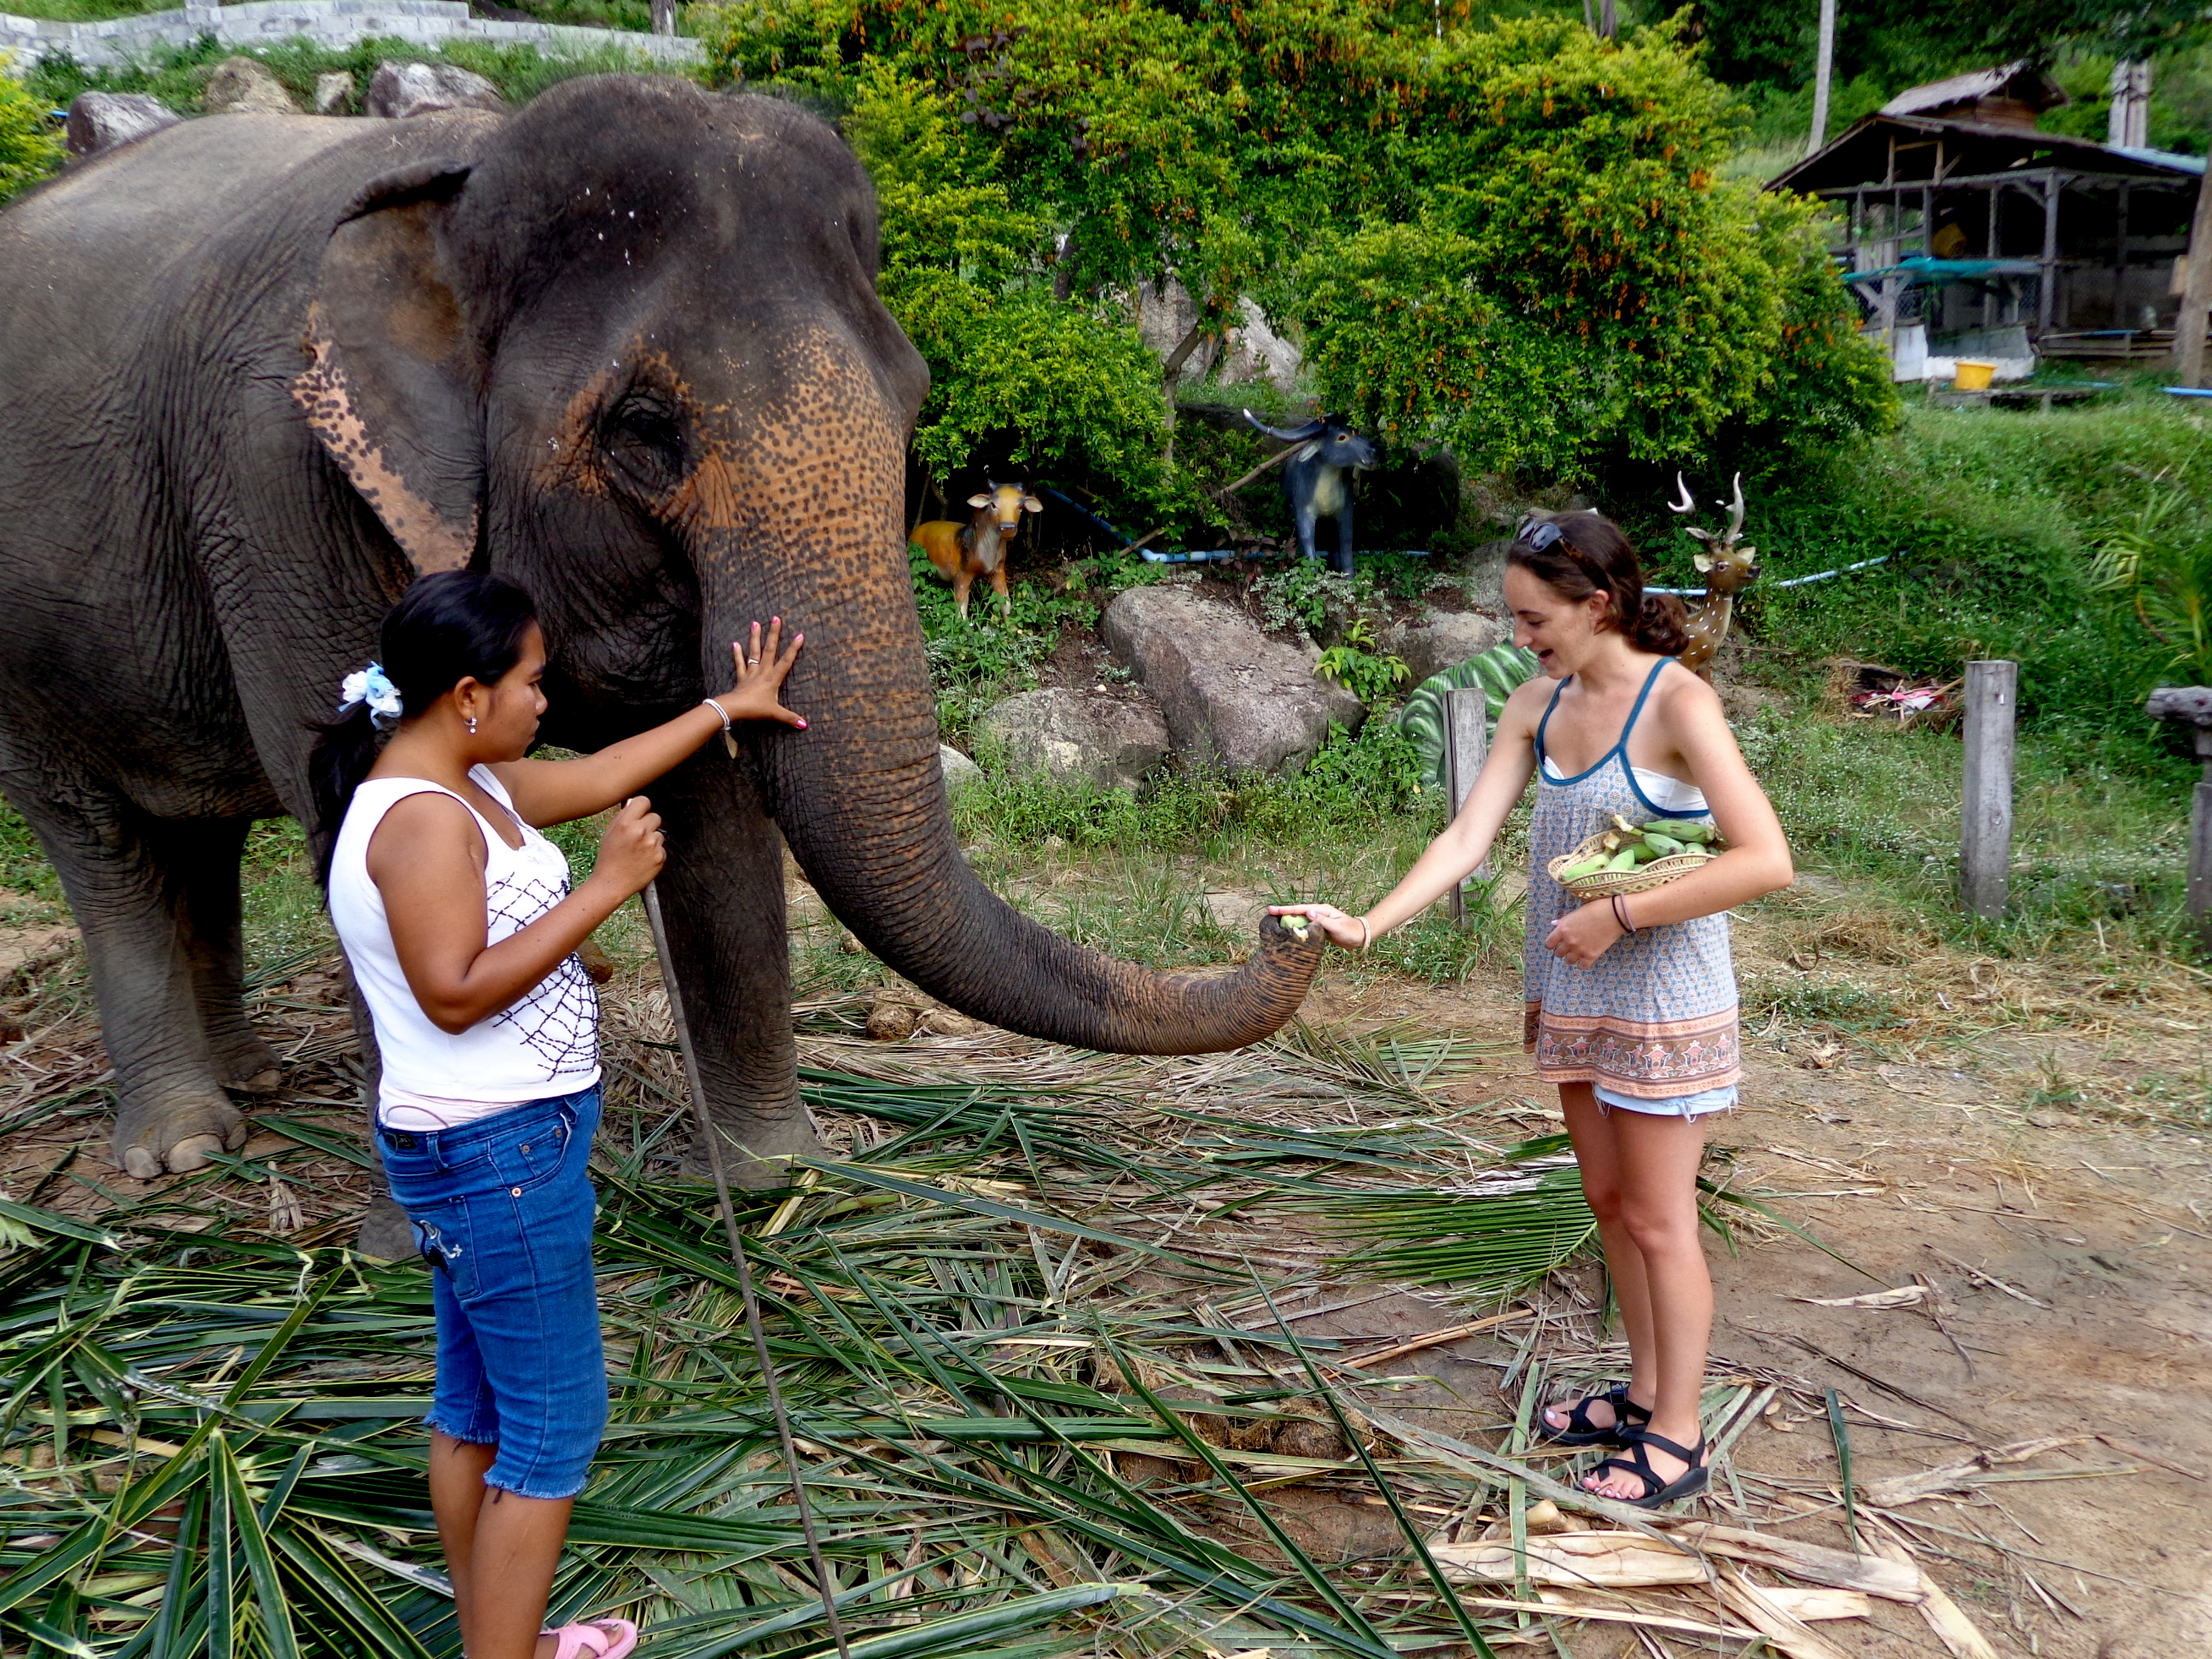 Meeting an elephant in Thailand